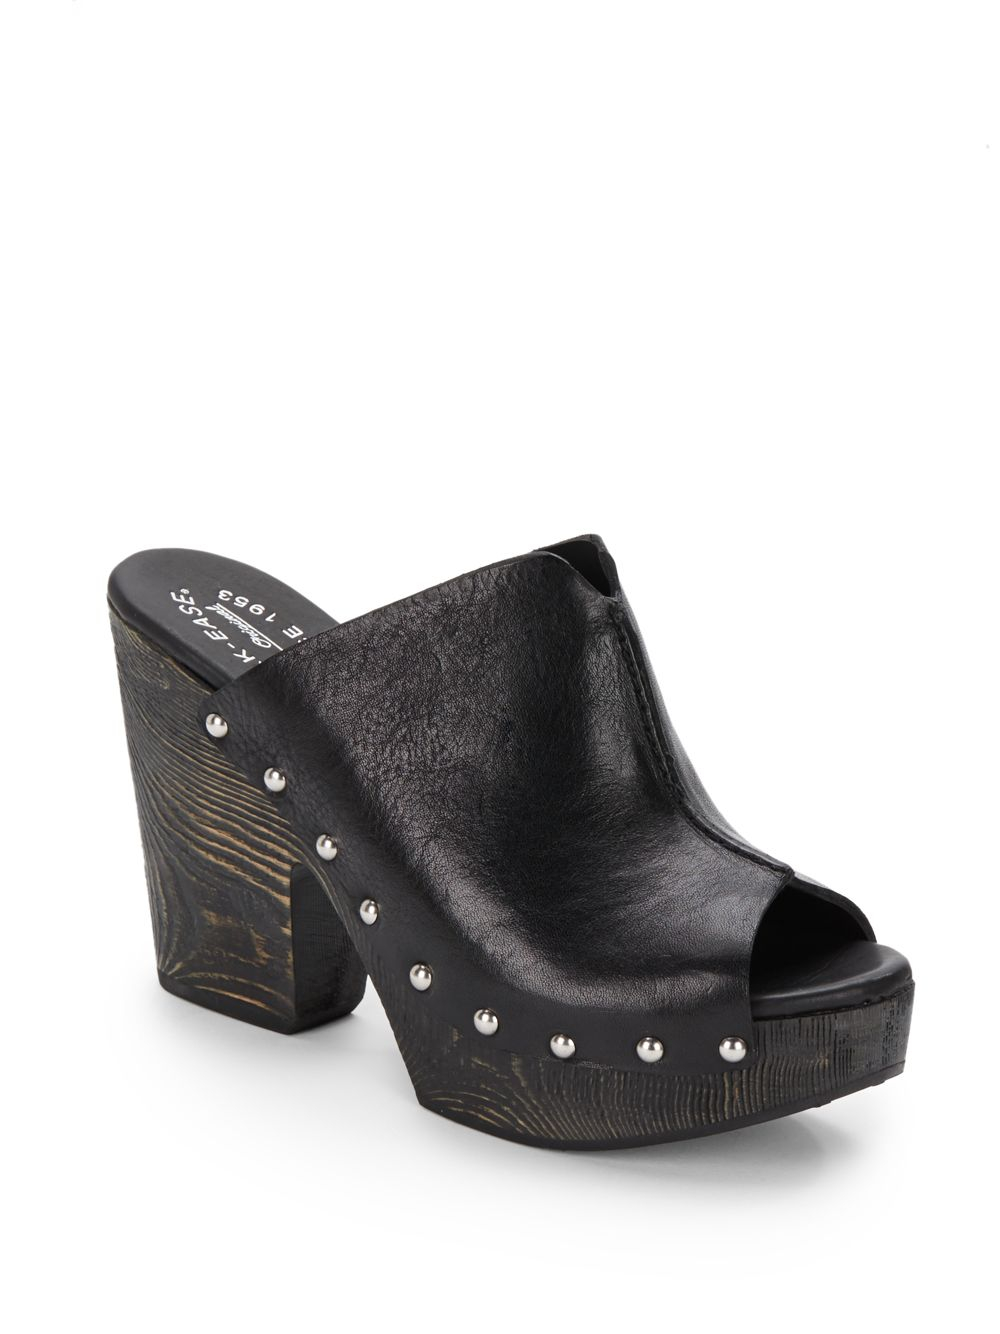 Black Studded Wedge Shoes